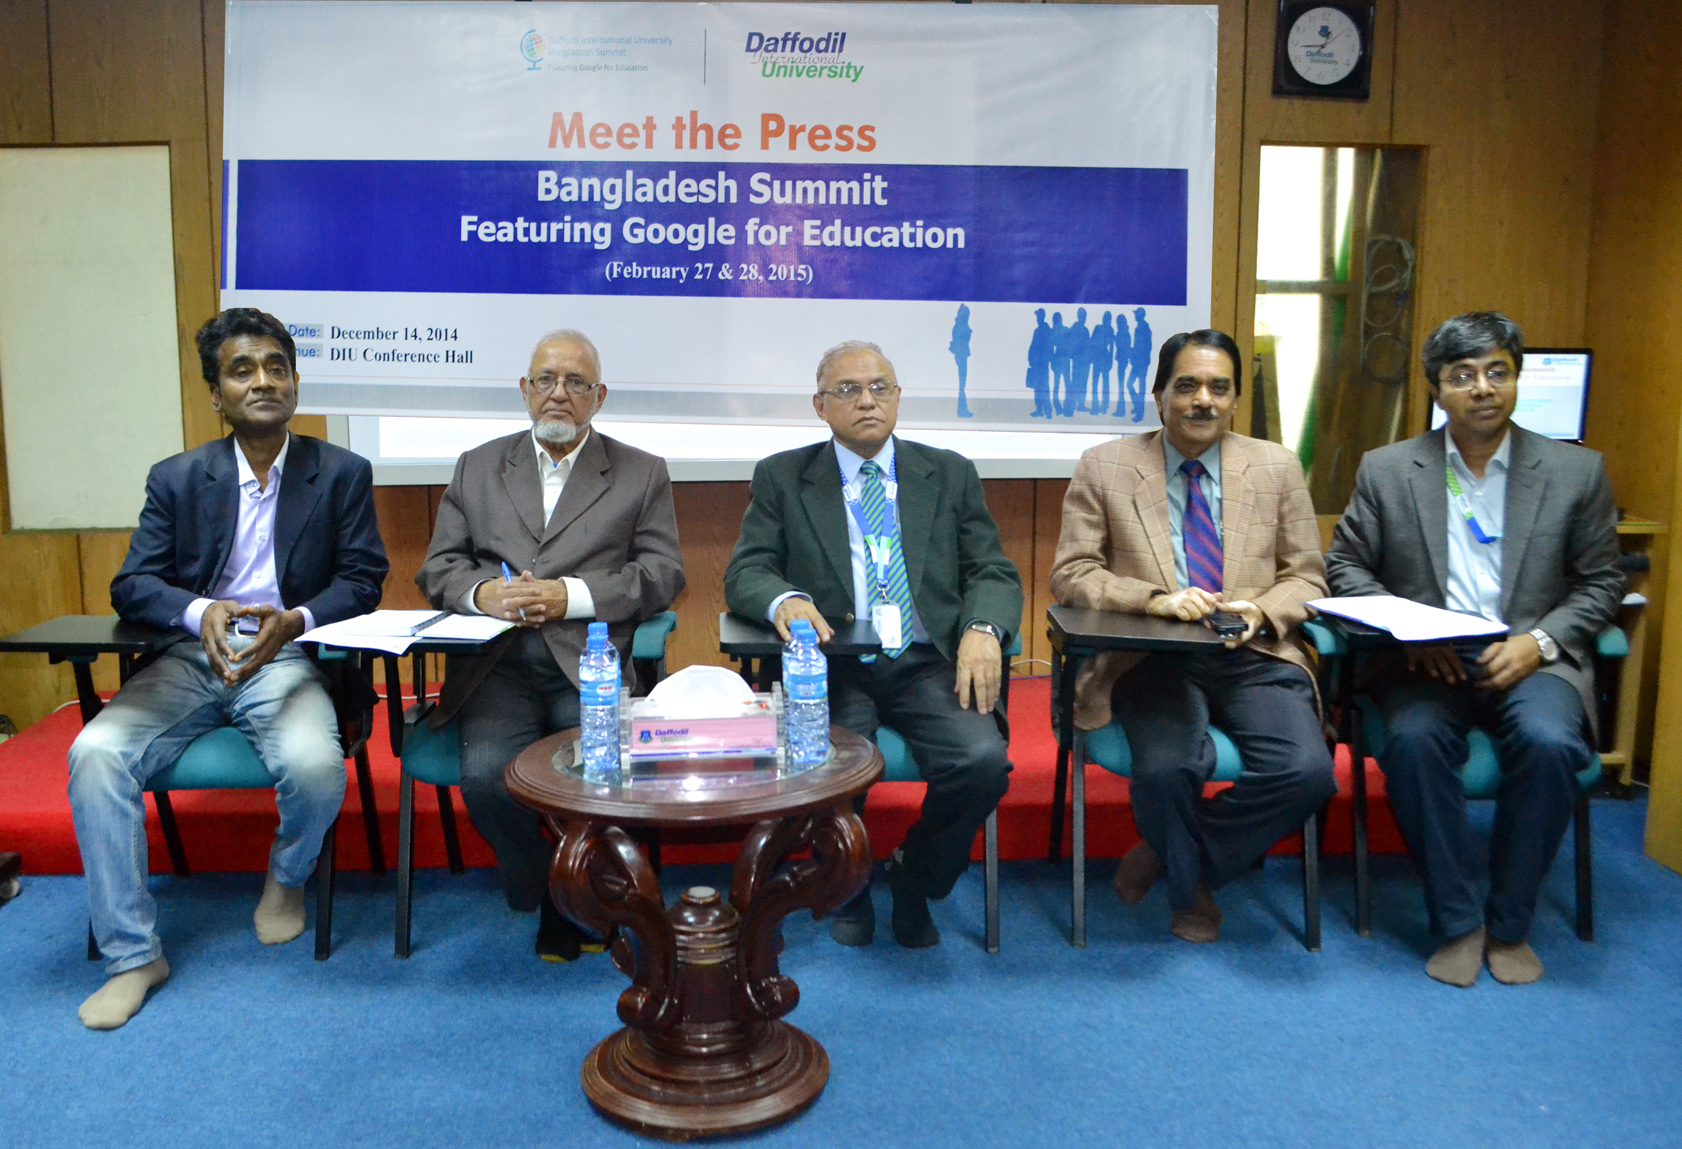 prof-dr-m-lutfar-rahman-vice-chancellor-daffodil-international-university-along-with-distinguished-guests-at-meet-the-press-on-bangladesh-summit-featuring-google-for-education-2015.JPG